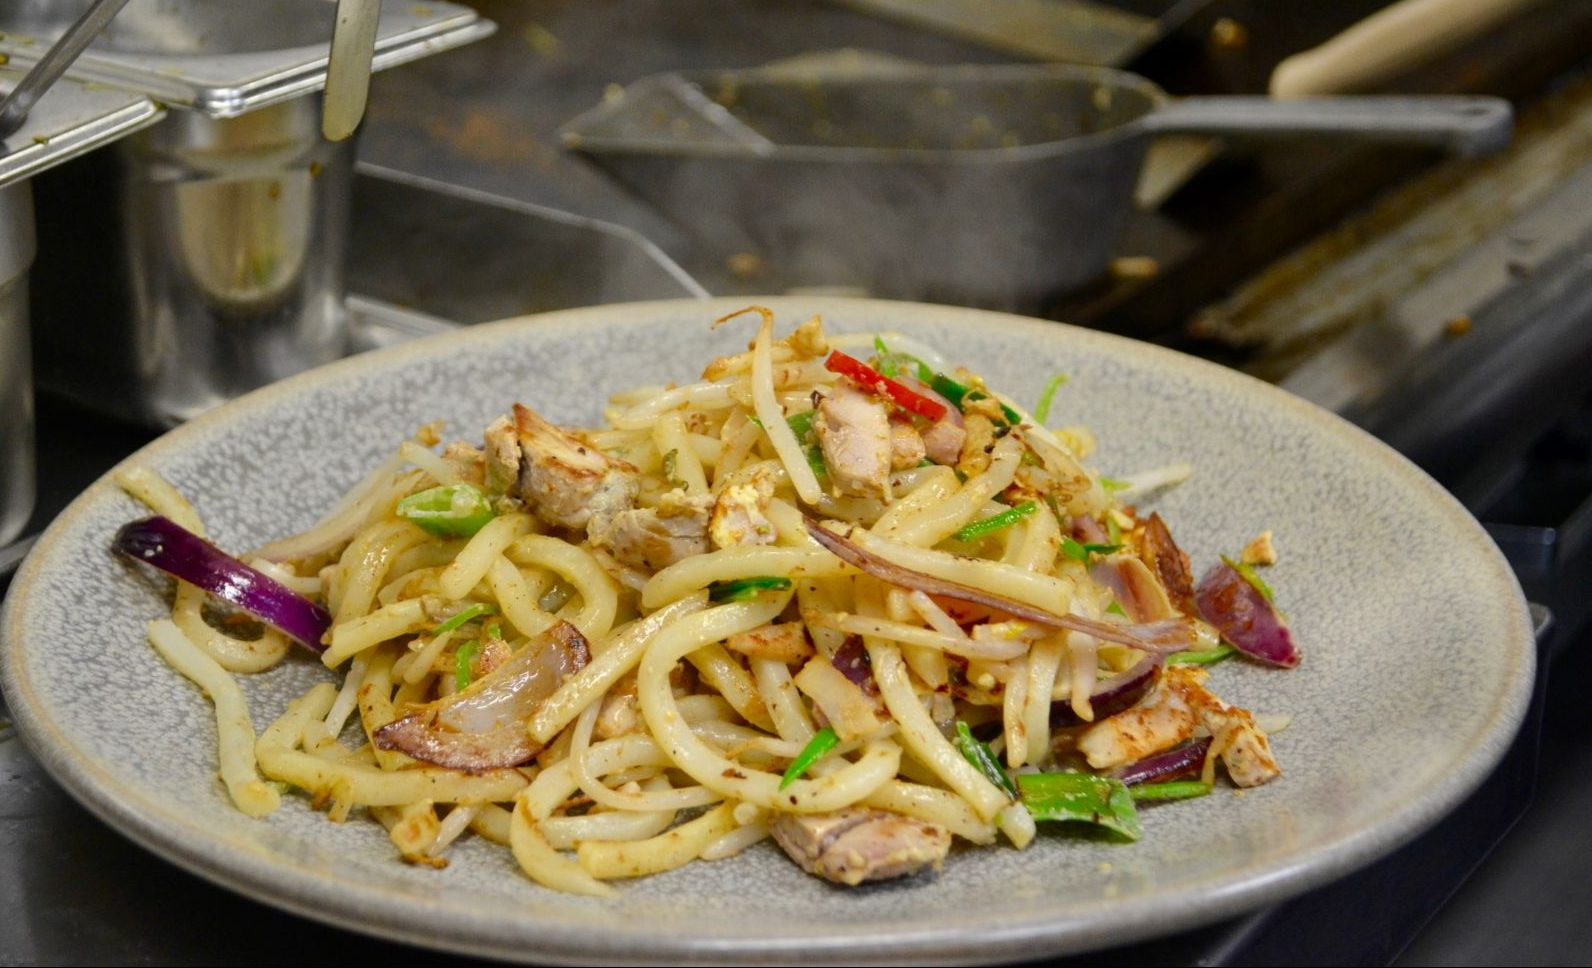 Wagamamas Cambridge*: New menu items & getting into the kitchen!